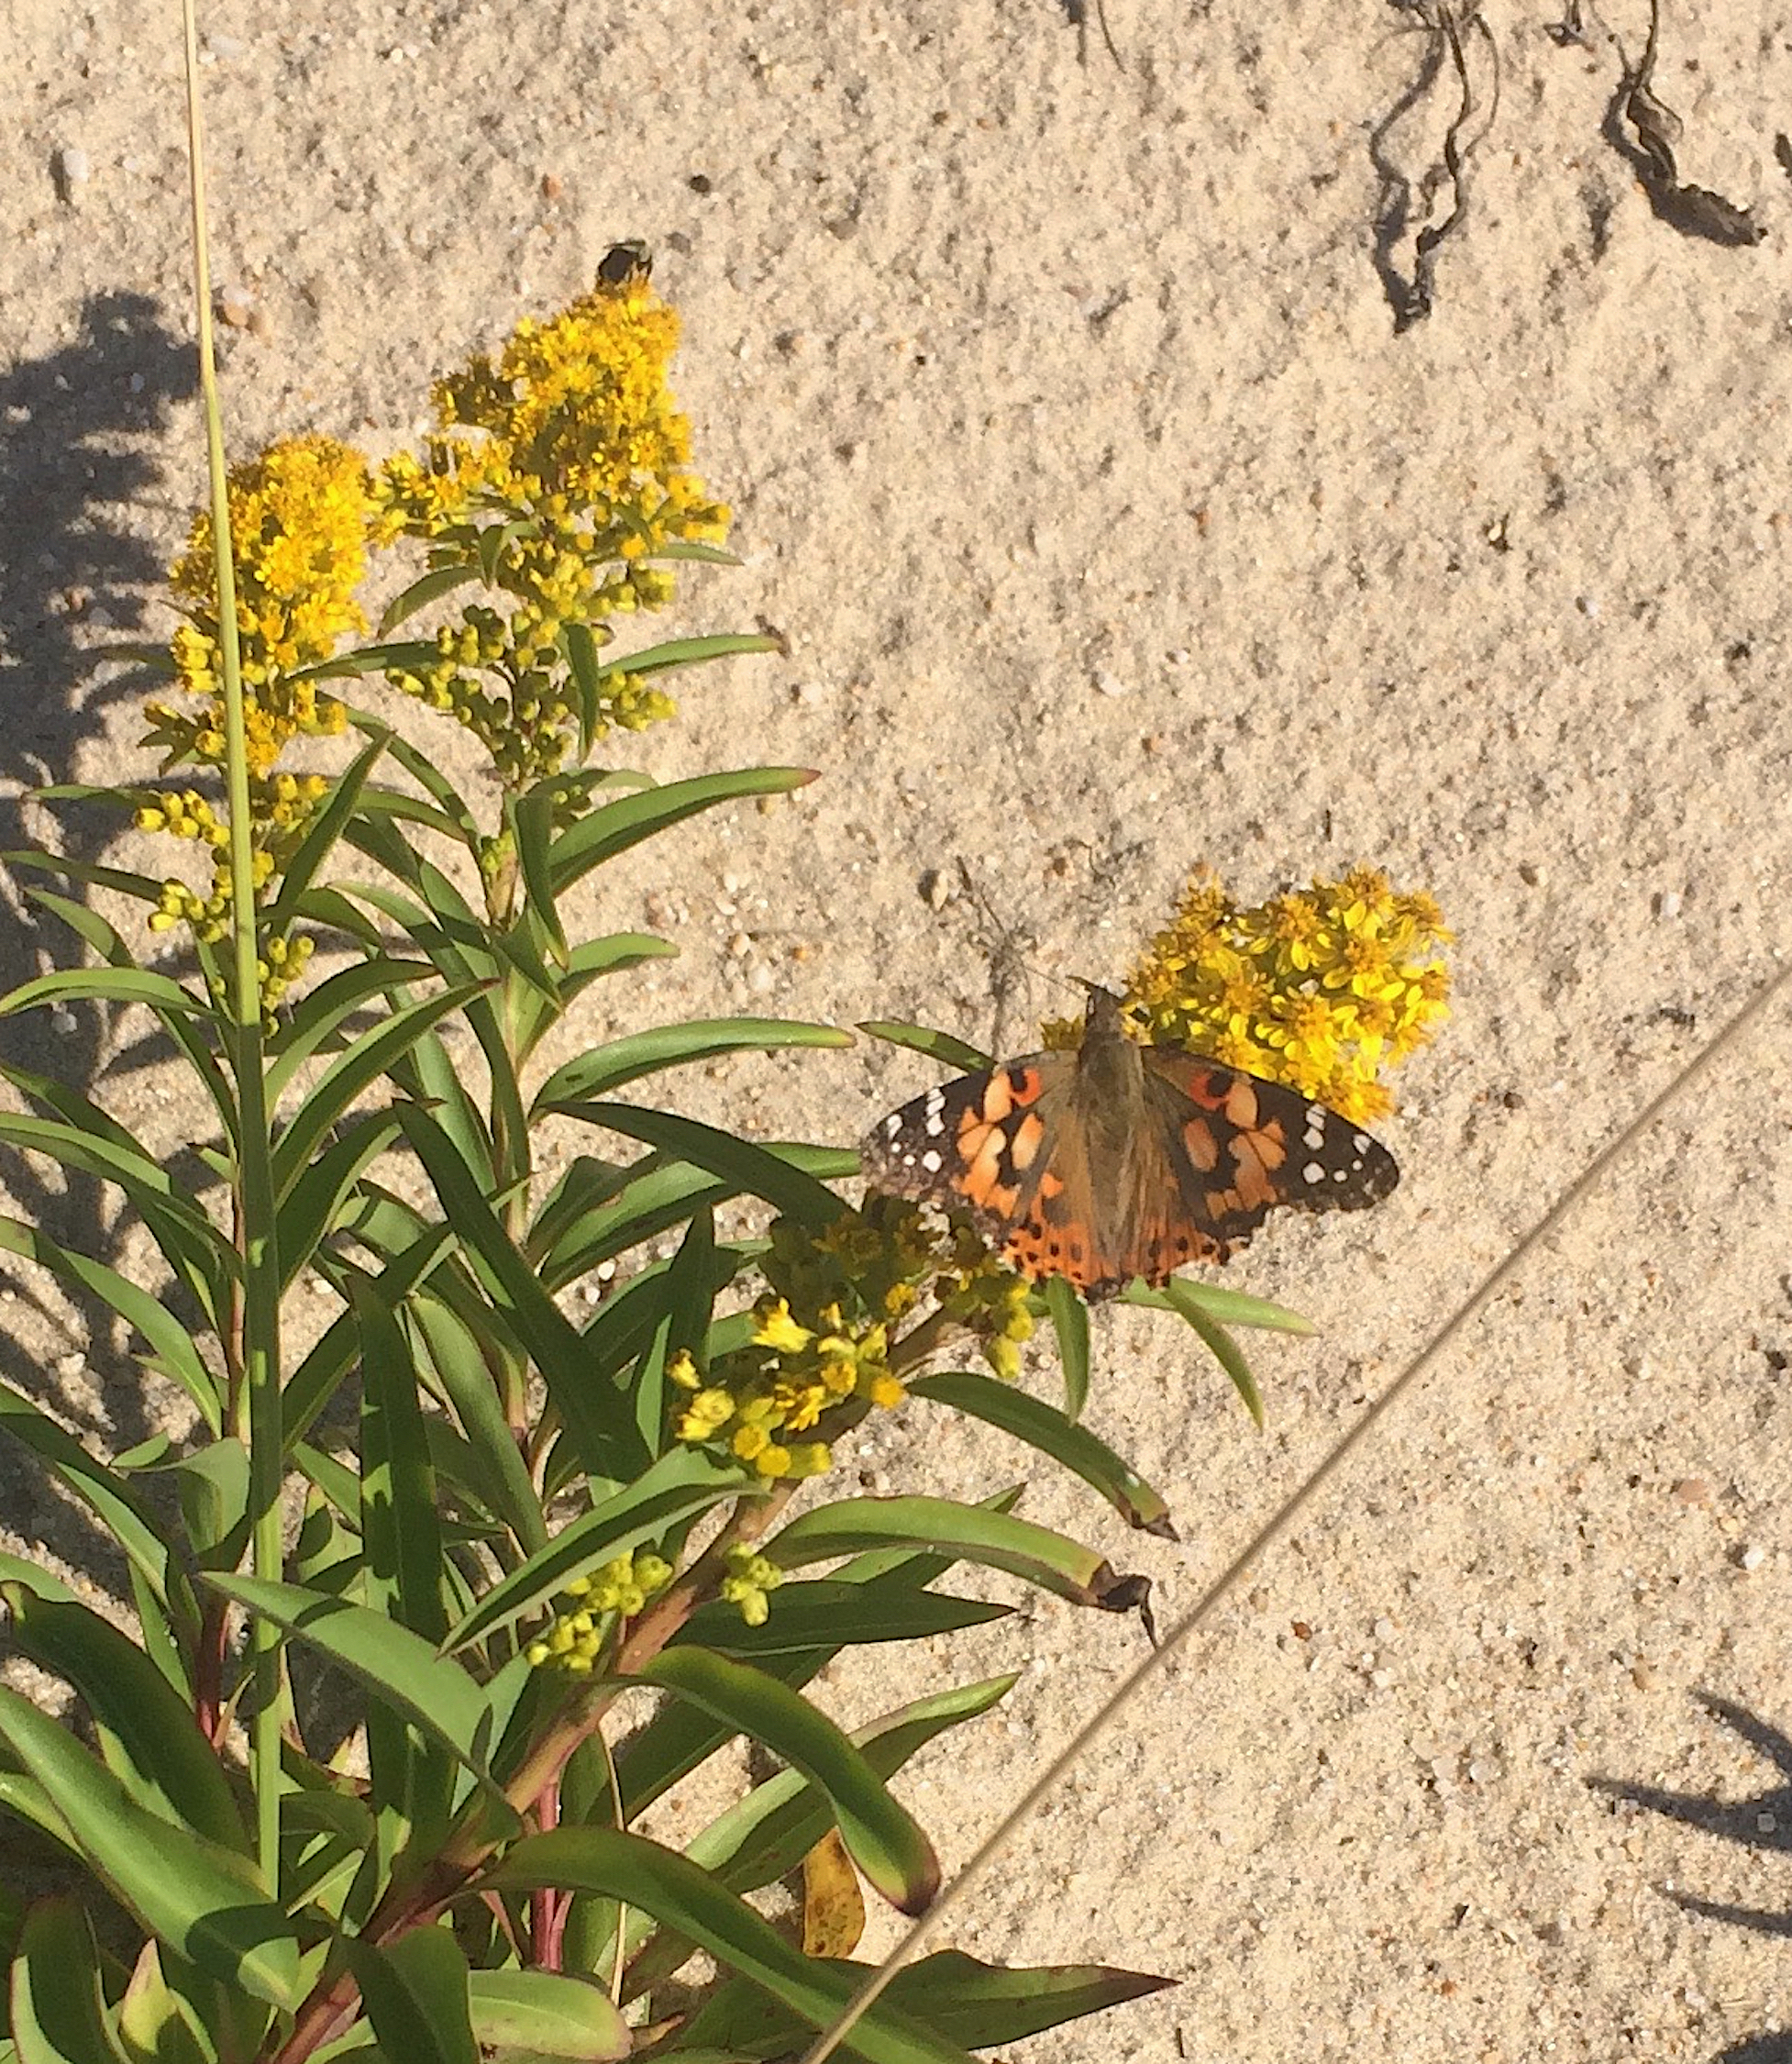 A painted lady butterfly feeding on seaside goldenrod nectar.